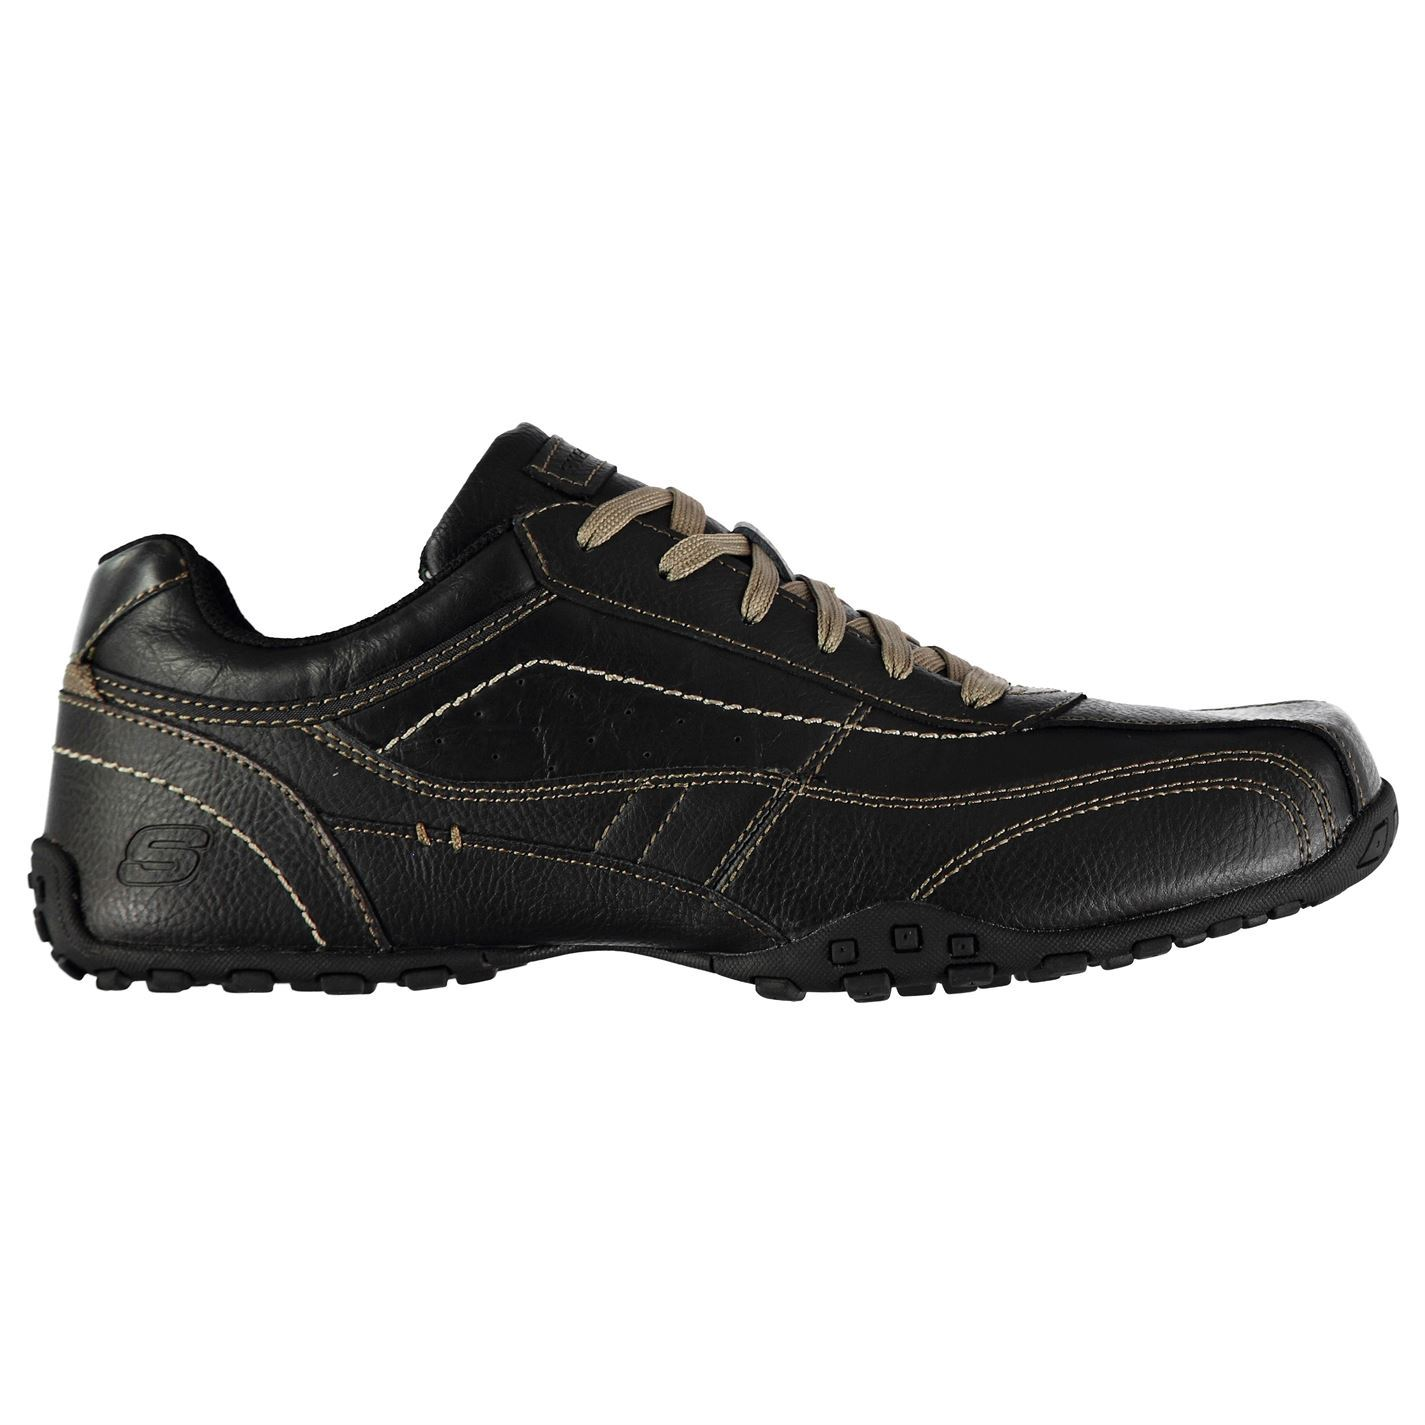 Skechers Schuhes  Uomo Citywalk El Schuhes Skechers Casual Lace Up Padded Ankle Collar Comfortable 5ca754